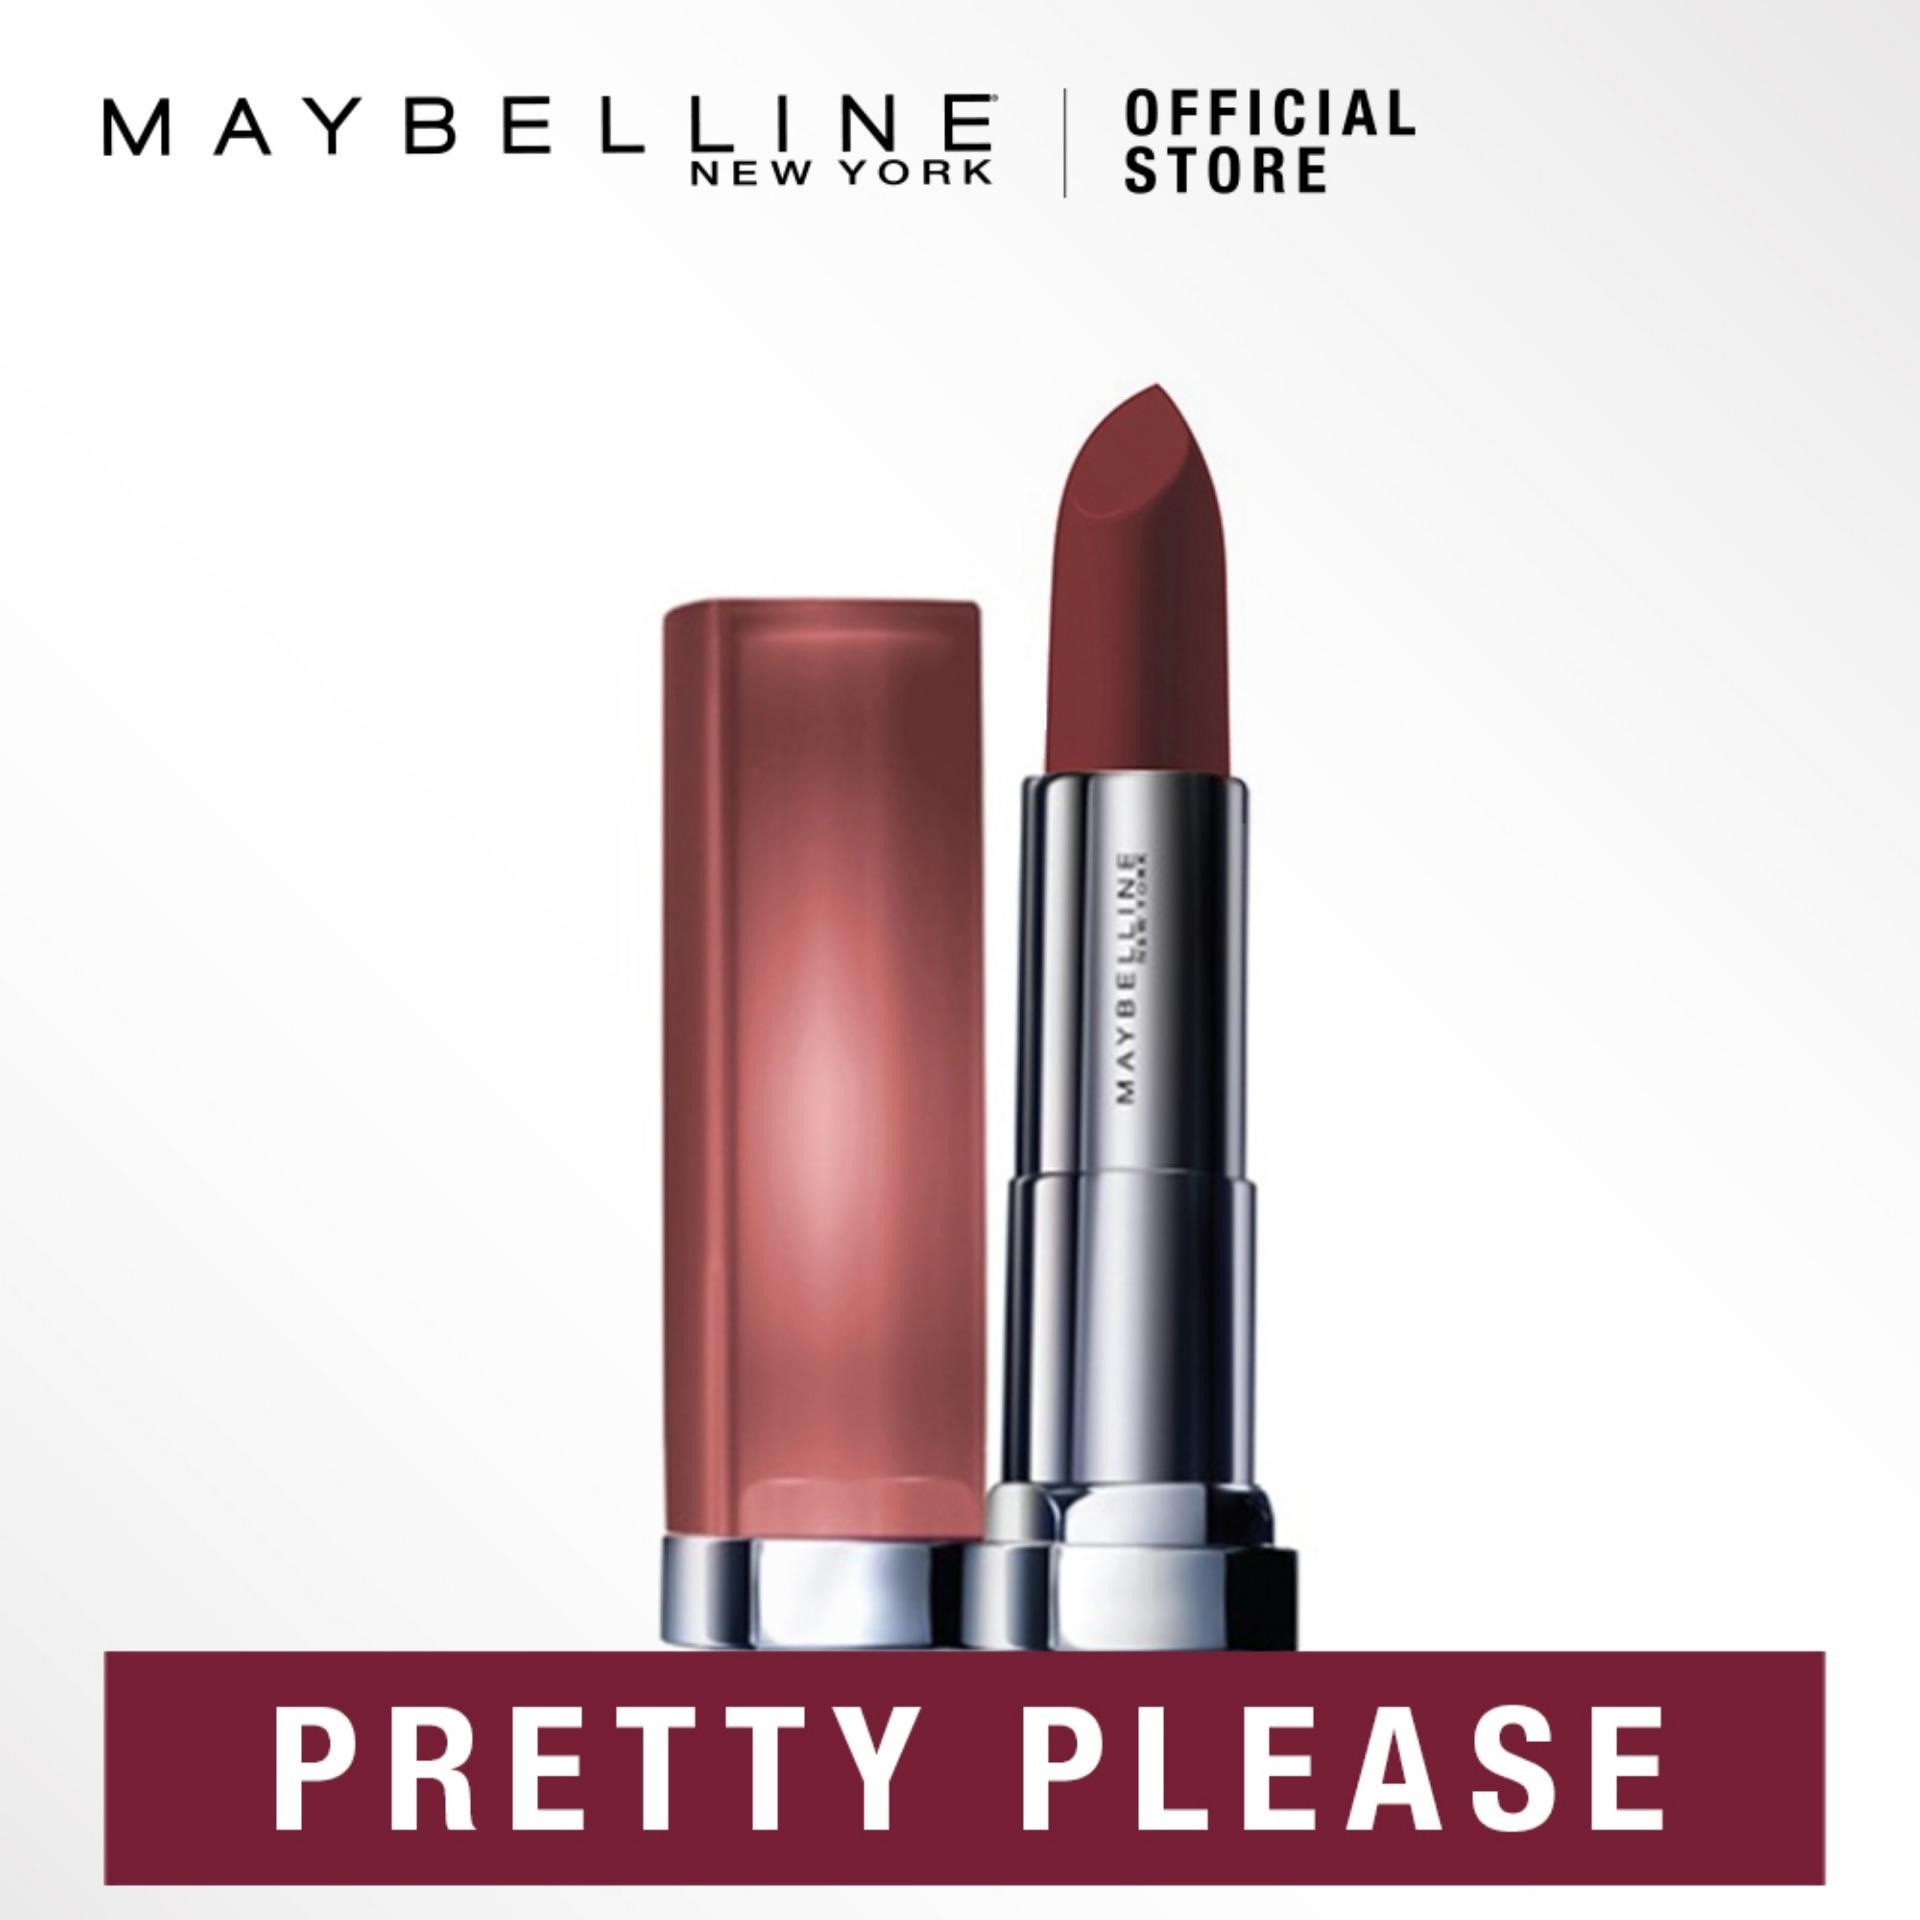 Maybelline Color Sensational Powder Matte Lipstick Inti-Mattes Nudes By Maybelline.